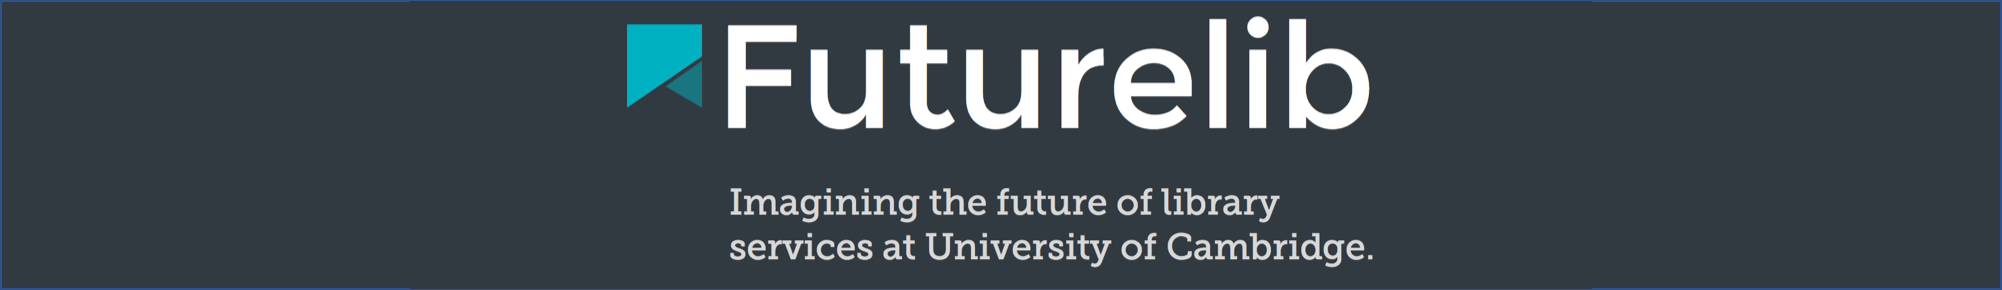 Futurelib logo and text reading imagining the future or library services at University of Cambridge